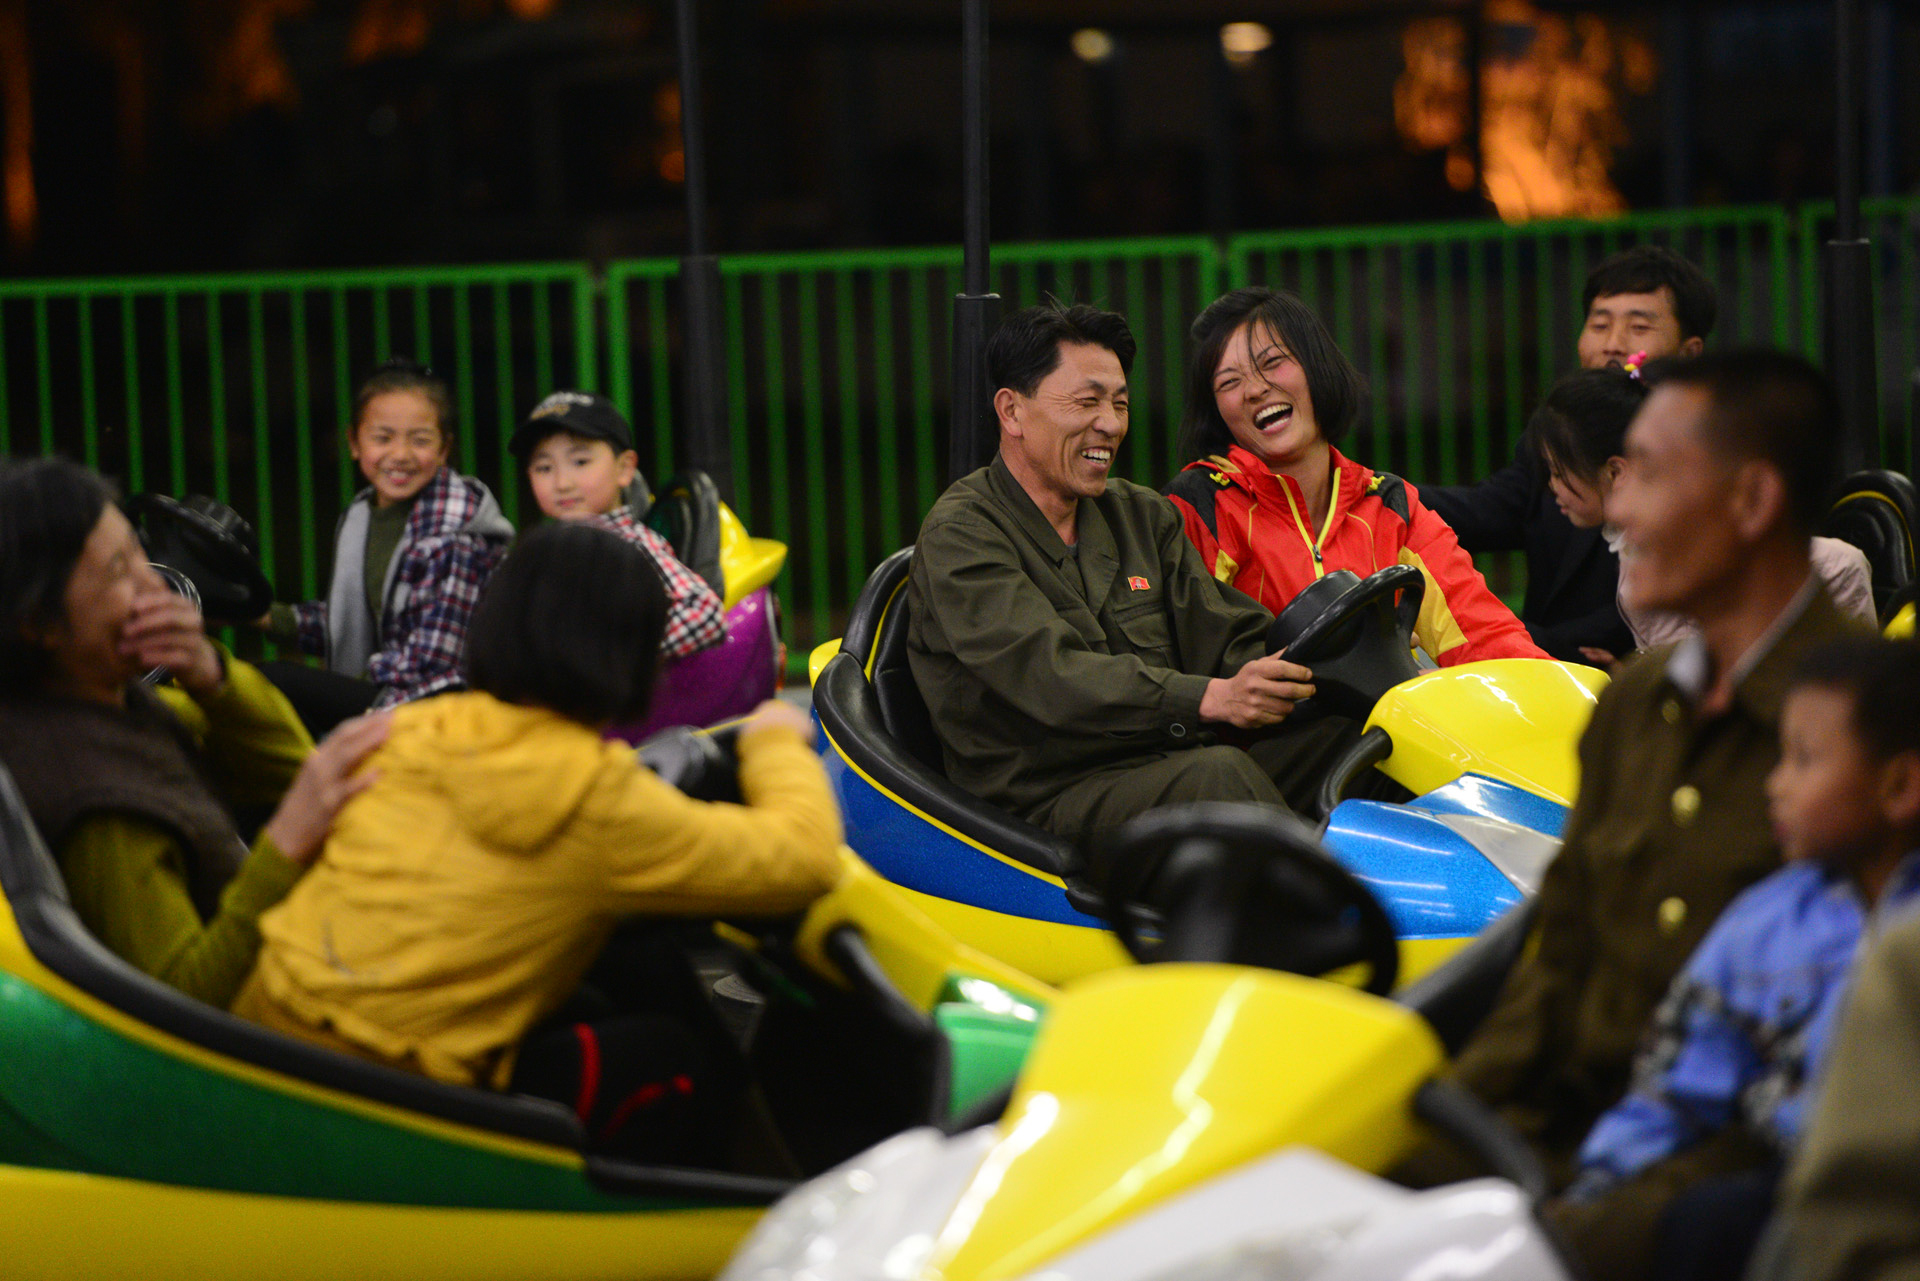 Two people share a laugh at the Pyongyang Amusement park, which featured bumper cars, a roller coaster and other rides.